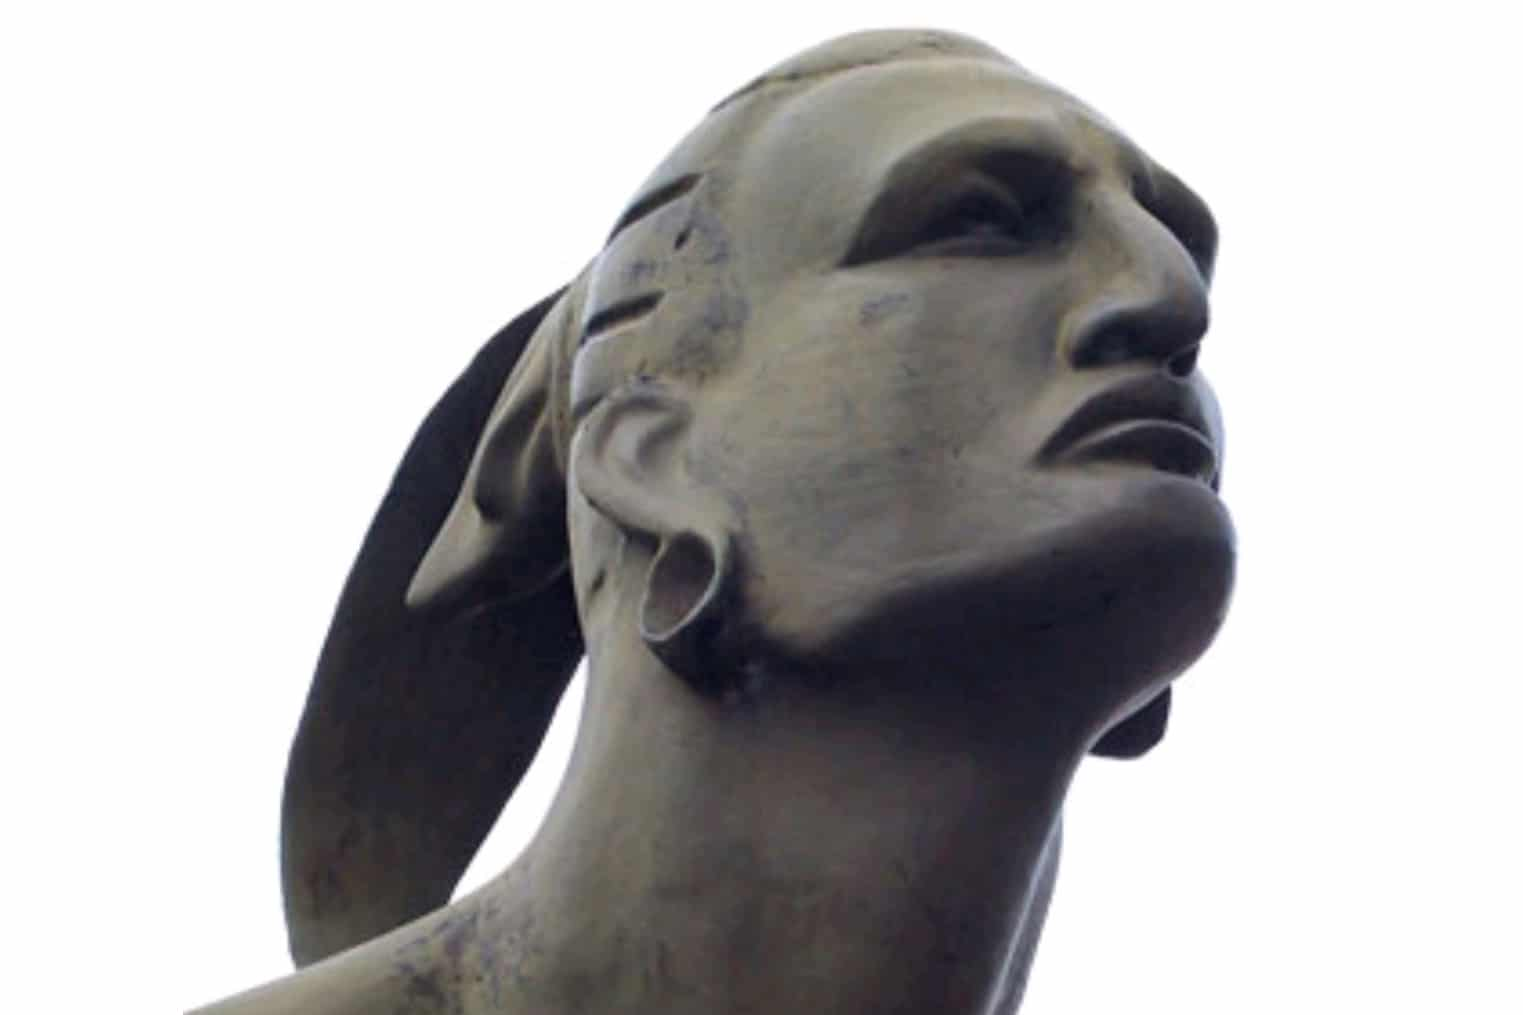 | Bust from the statue of Taino Chief Hatuey in Baracoa Cuba | MR Online